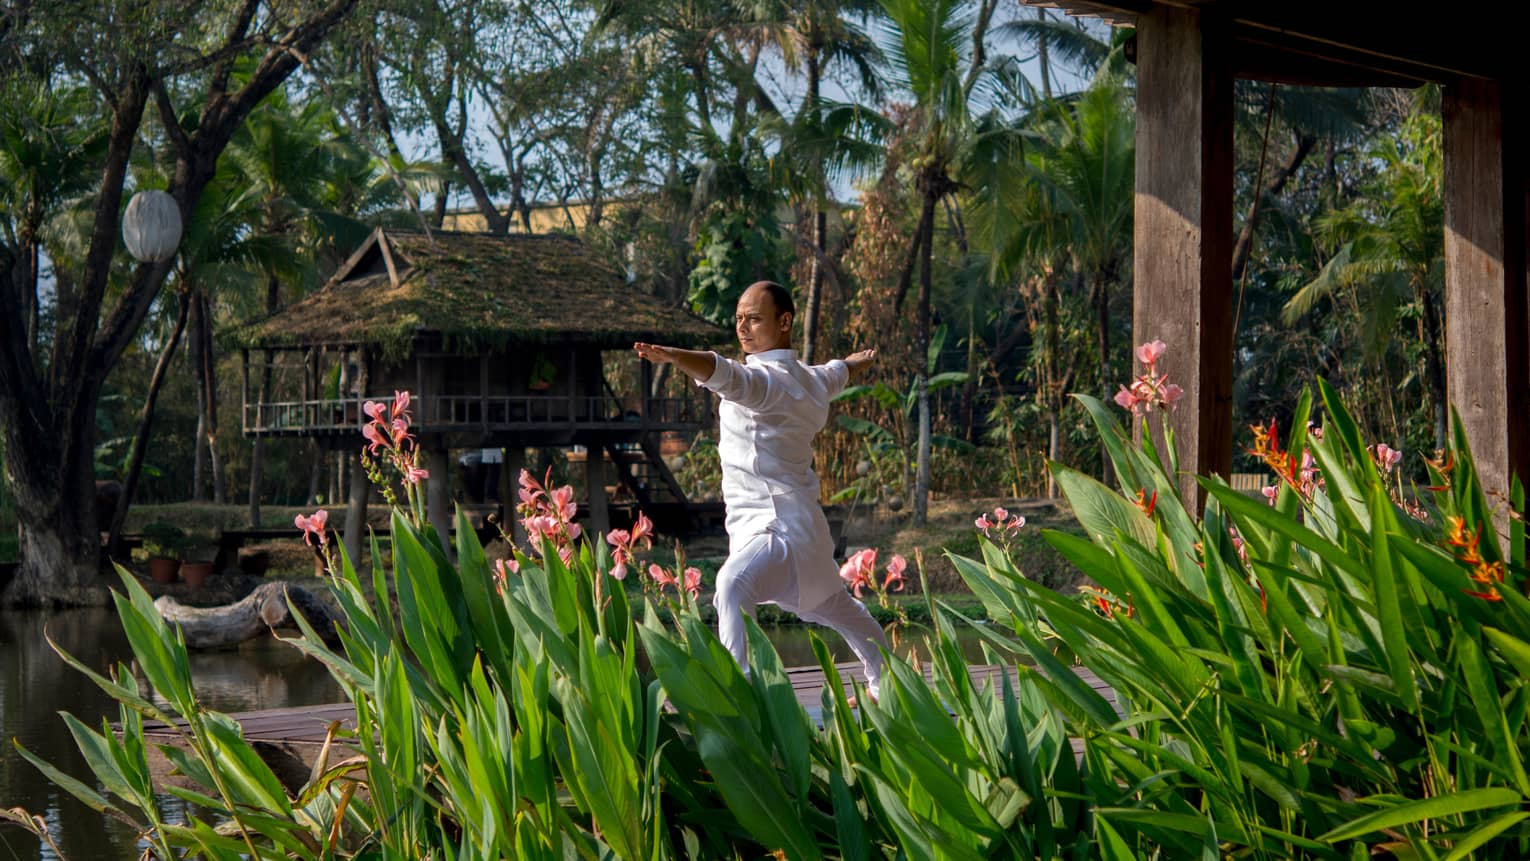 Resident yogi Dheera wearing white in yoga pose with arms outstretched by tall flowers, leaves